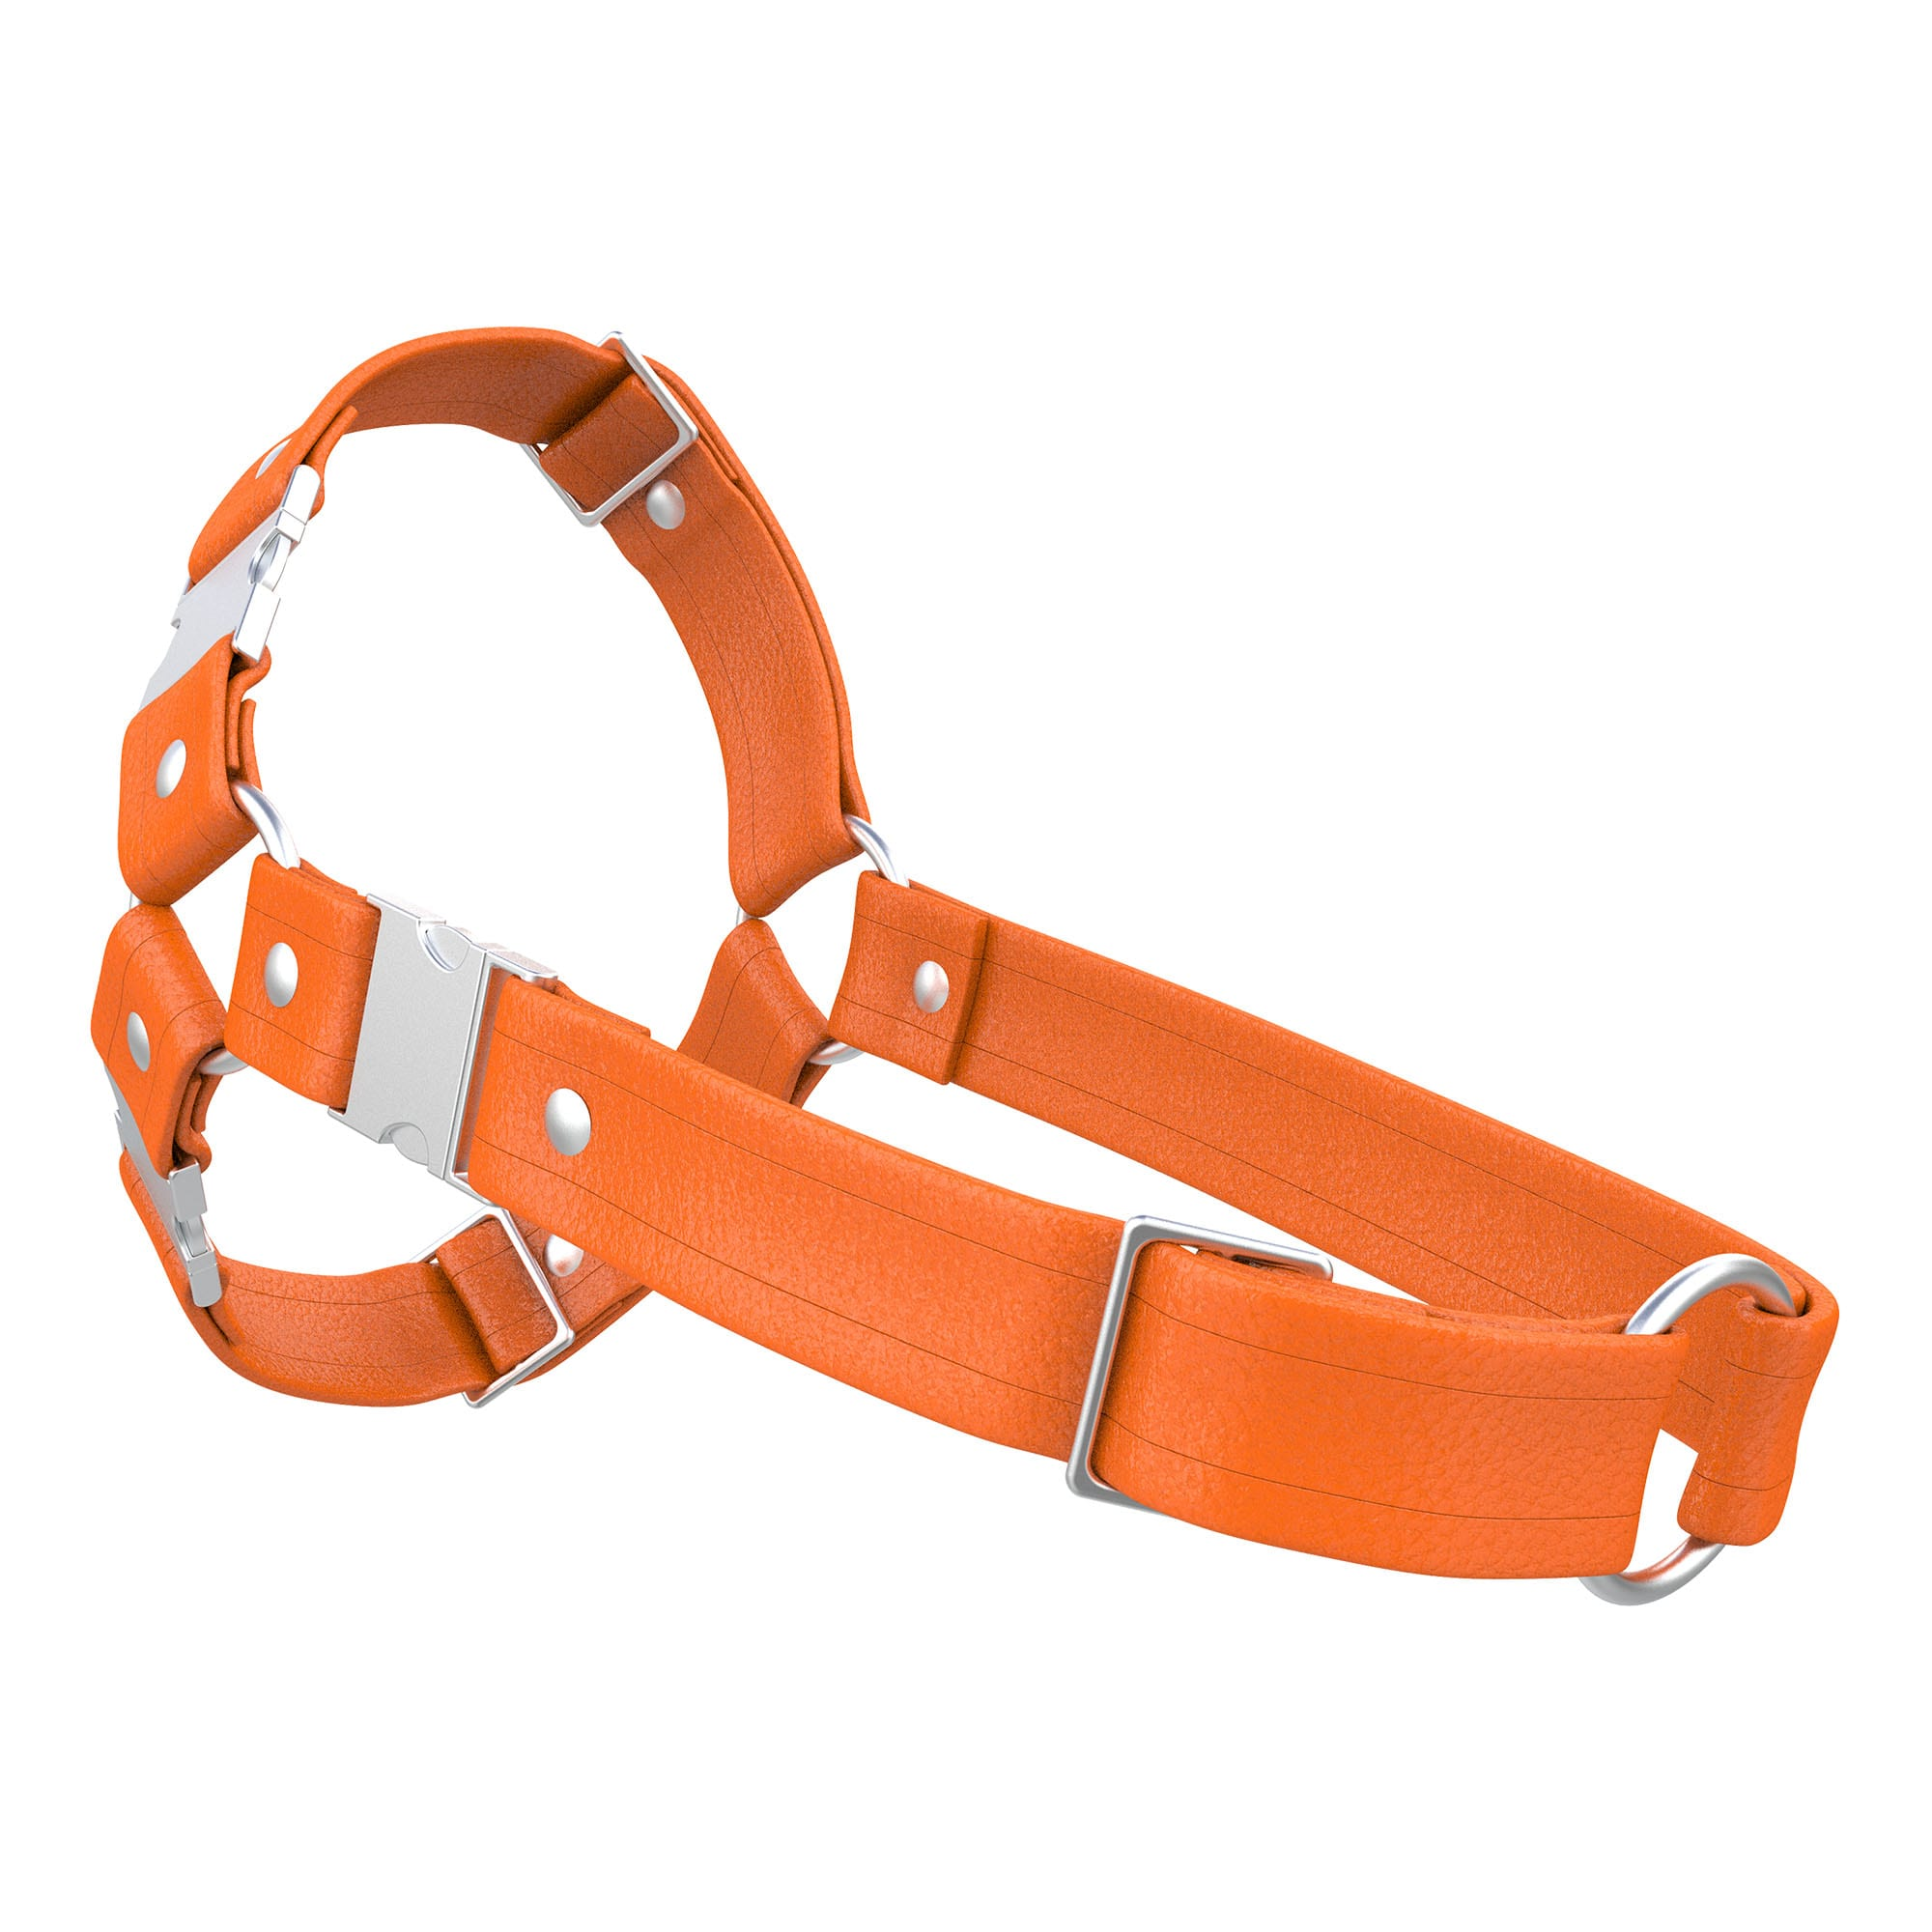 One Size Spartan Harness – Standard Leather – Orange - Silver Metal Fittings